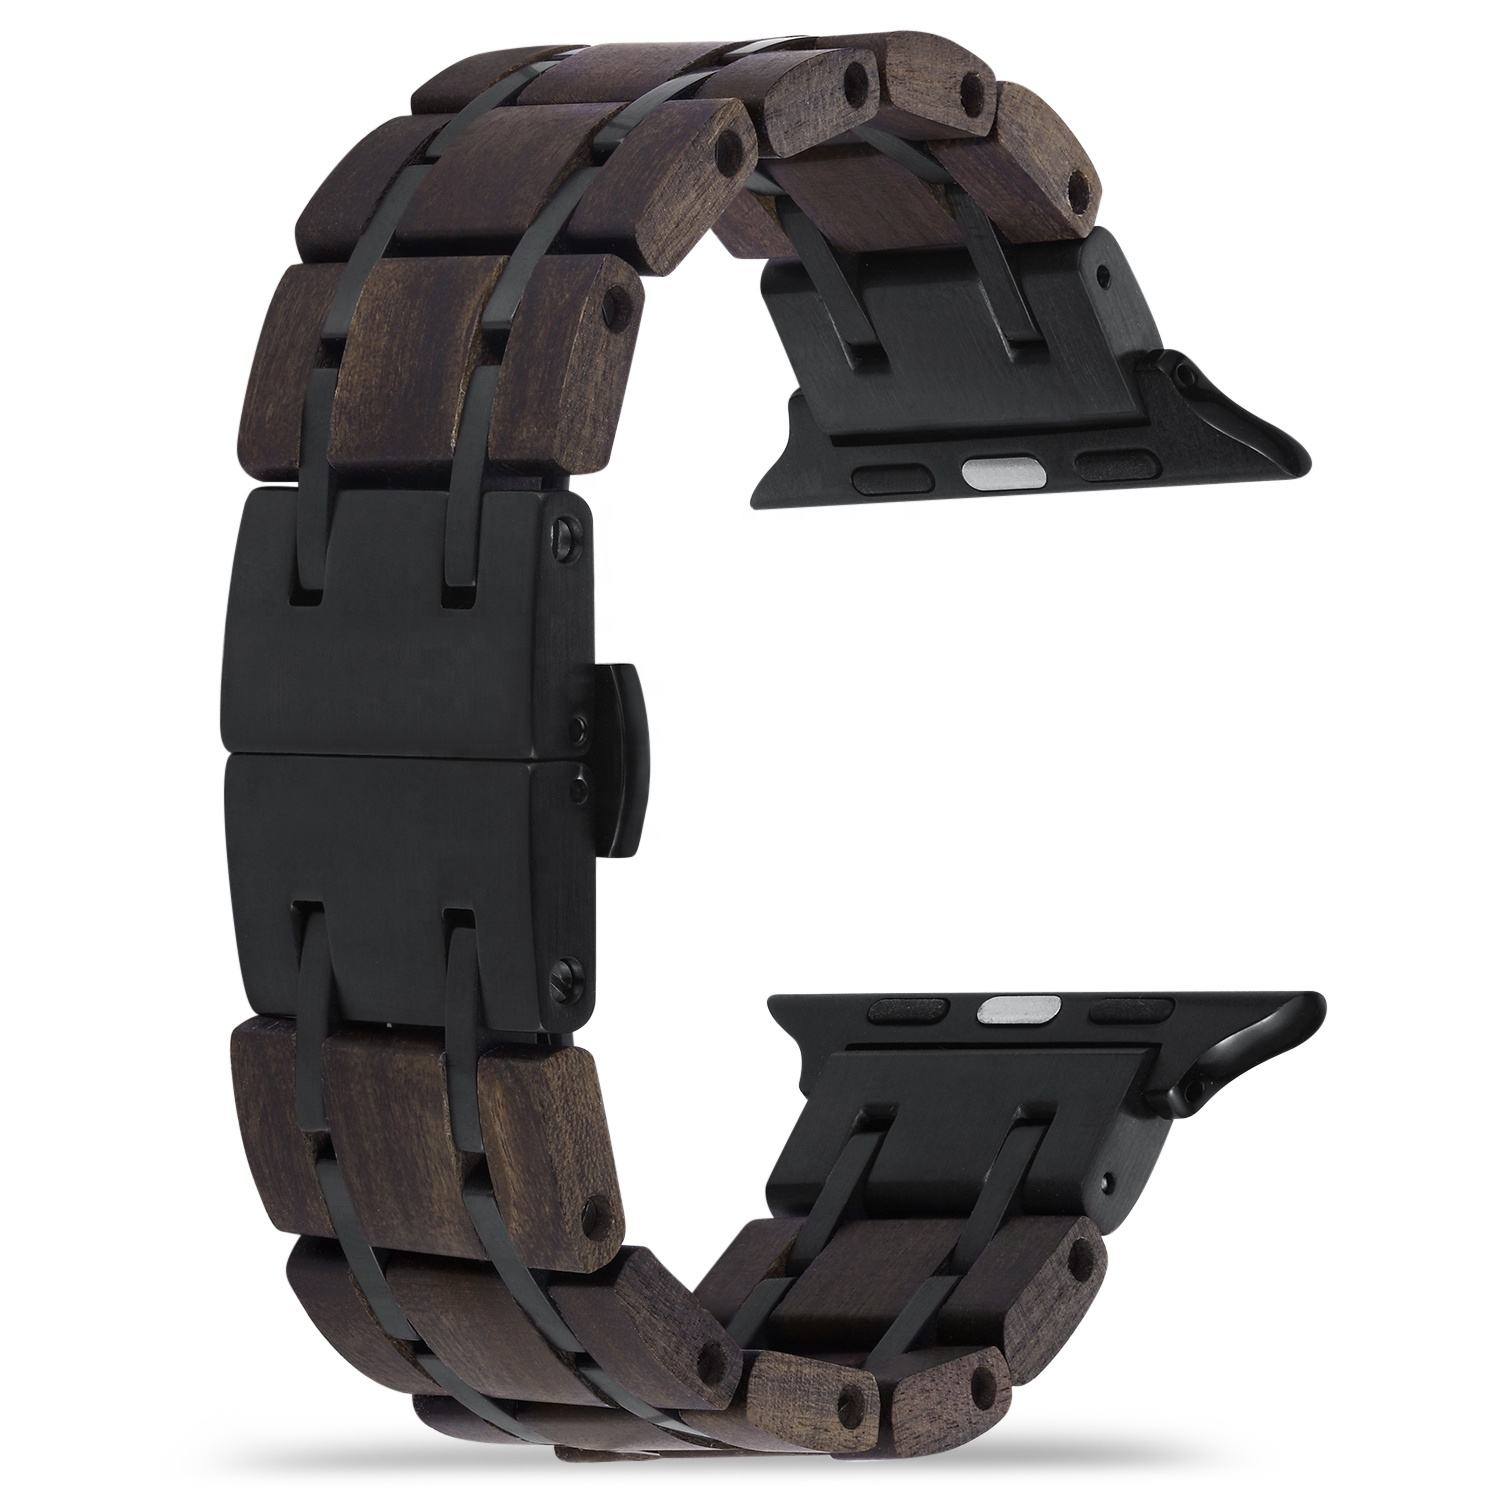 A015 wood apple watch strap band compatible with IWATCH series 6 SE 5 4 3 Luxury drop shipping to USA ETSY Amazon